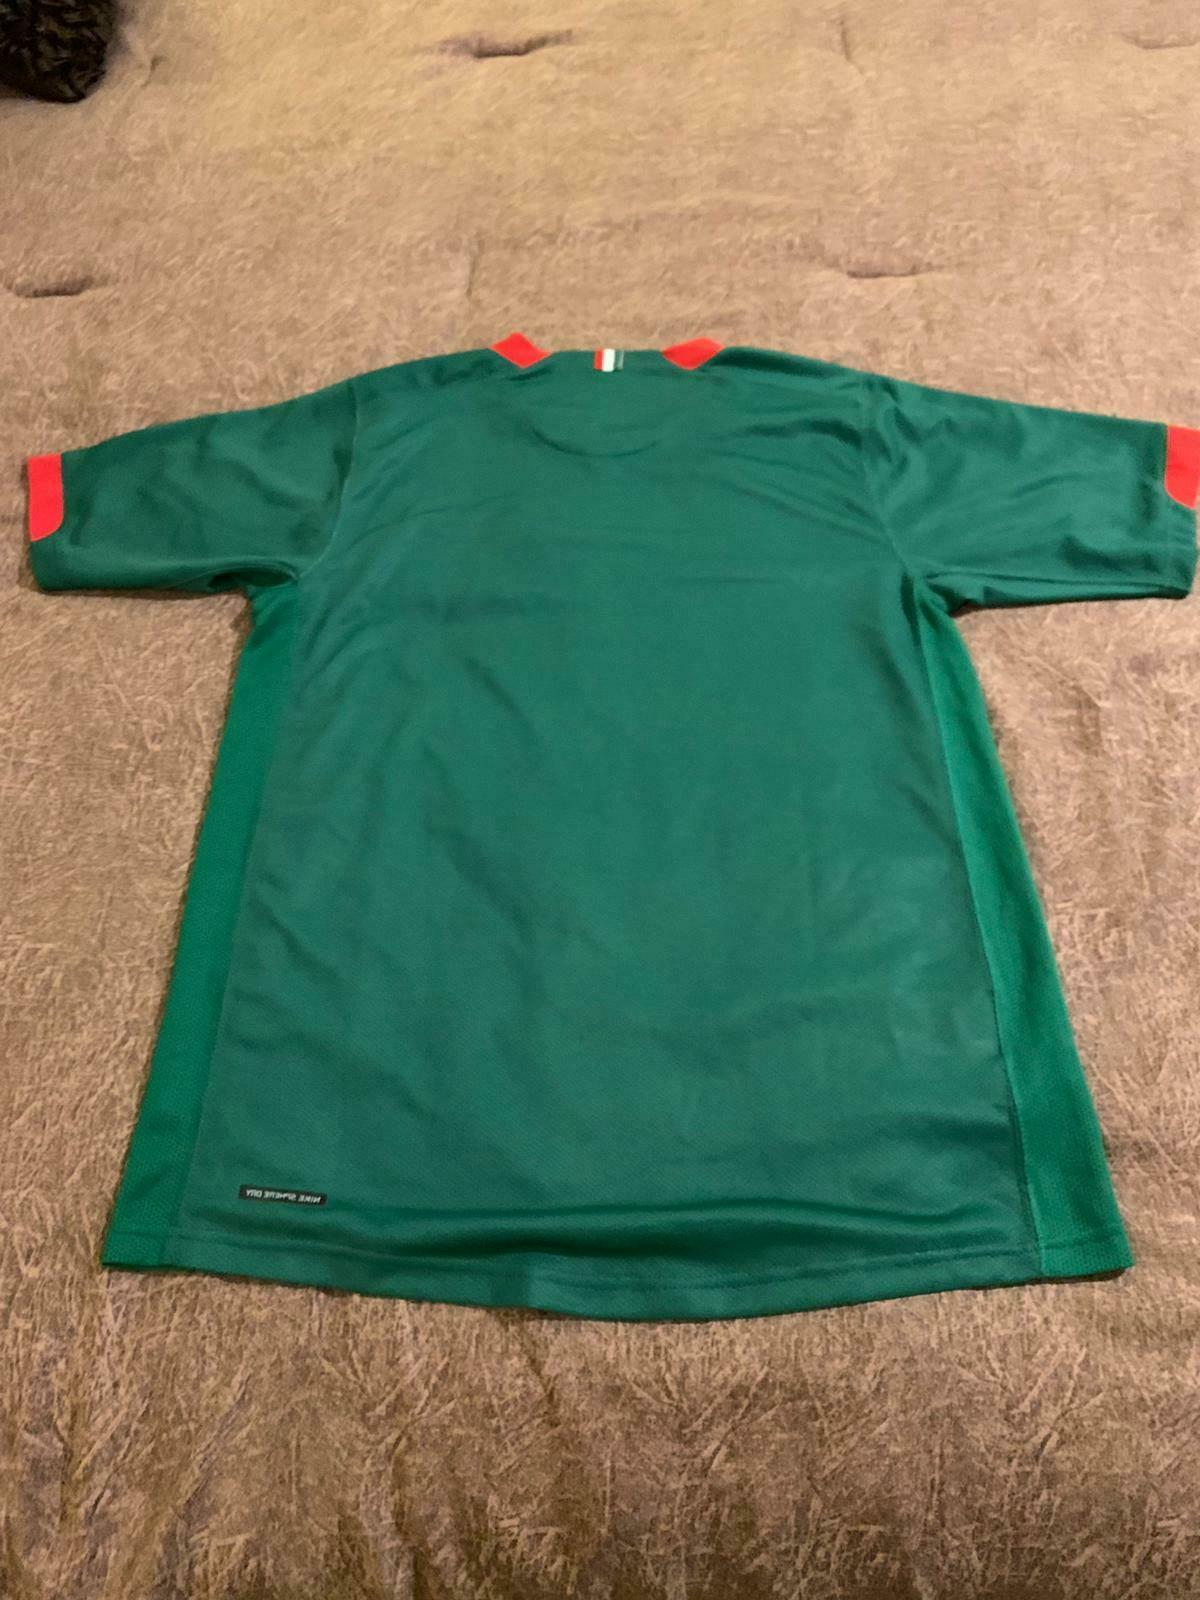 AUTHENTIC World Cup Jersey size ADULT SMALL